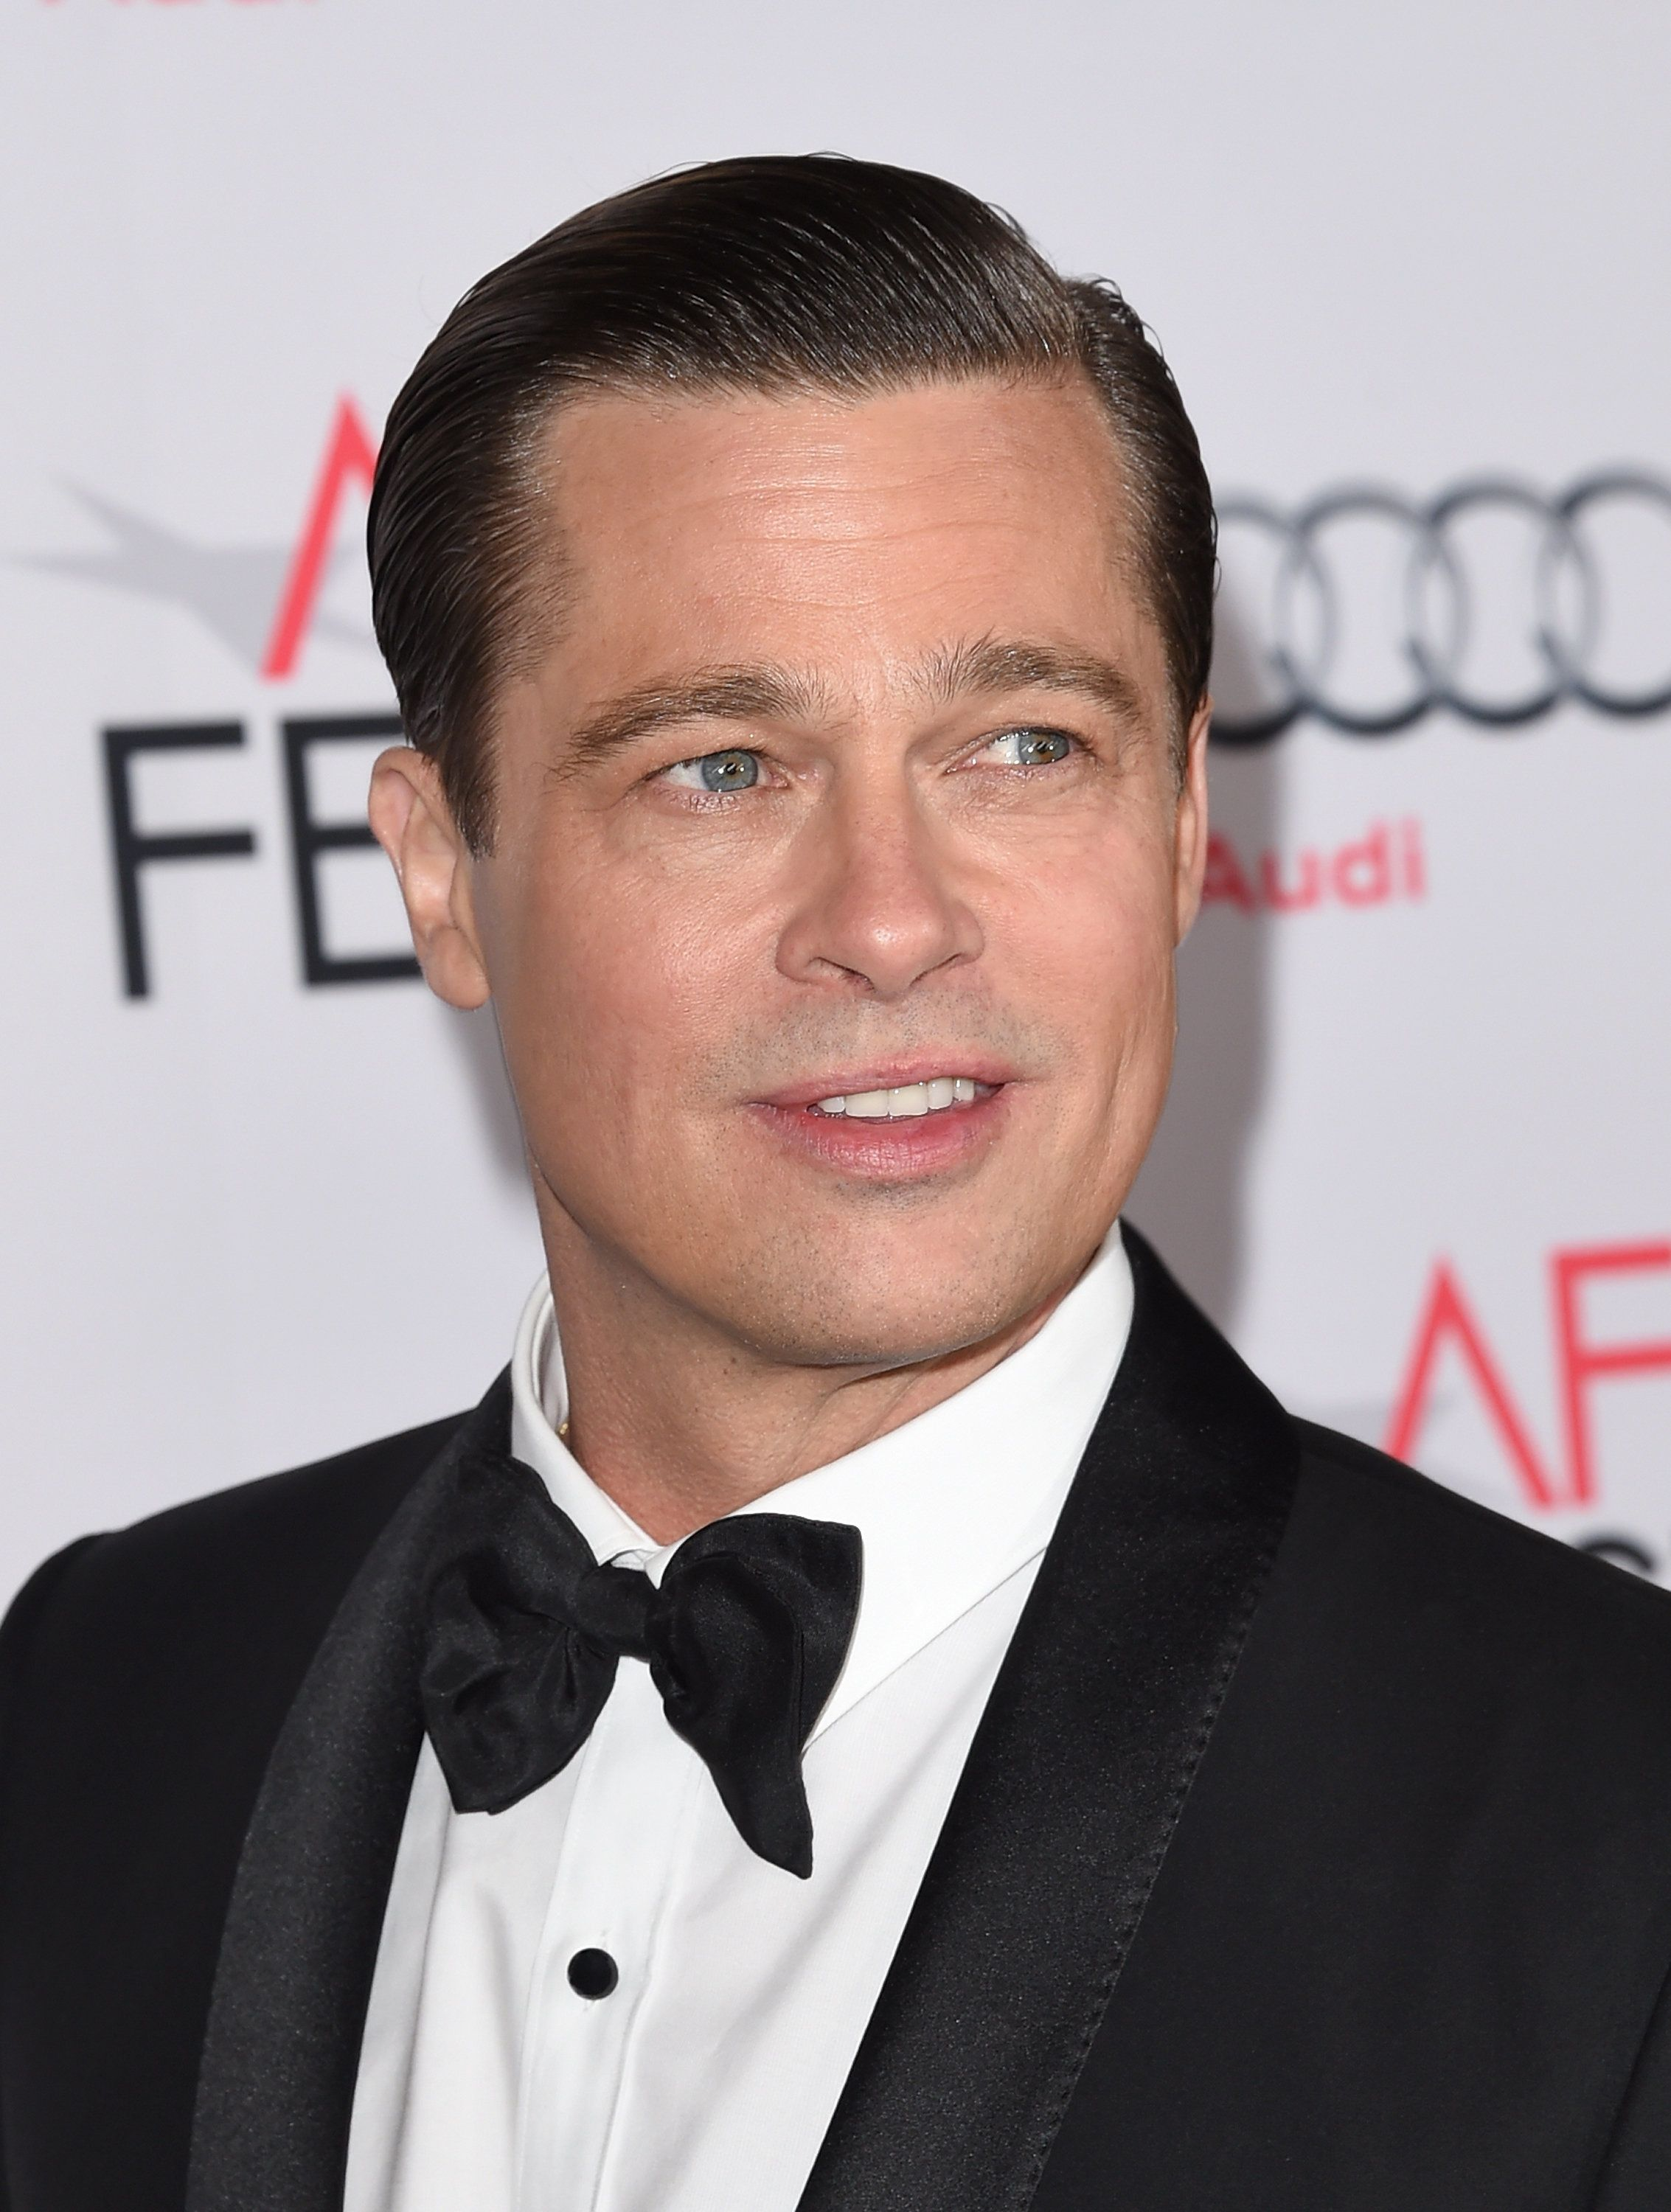 HOLLYWOOD, CA - NOVEMBER 05:  Actor-producer Brad Pitt attends the opening night gala premiere of Universal Pictures' 'By the Sea' during AFI FEST 2015 presented by Audi at TCL Chinese 6 Theatres on November 5, 2015 in Hollywood, California.  (Photo by Jason Merritt/Getty Images)